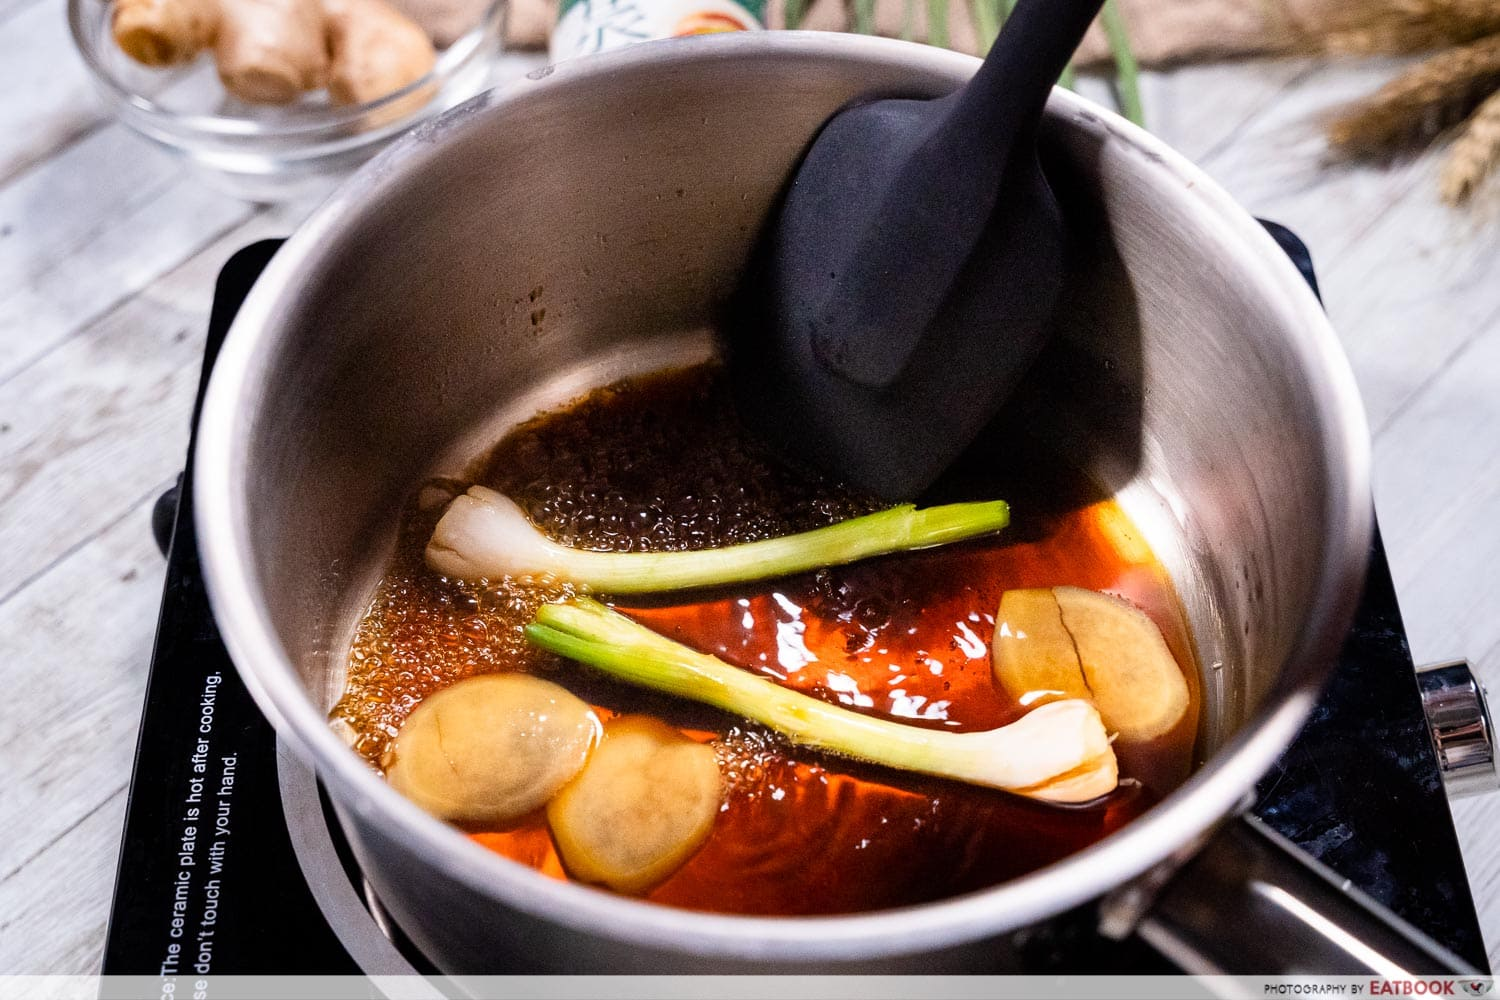 soy sauce and hot ginger oil